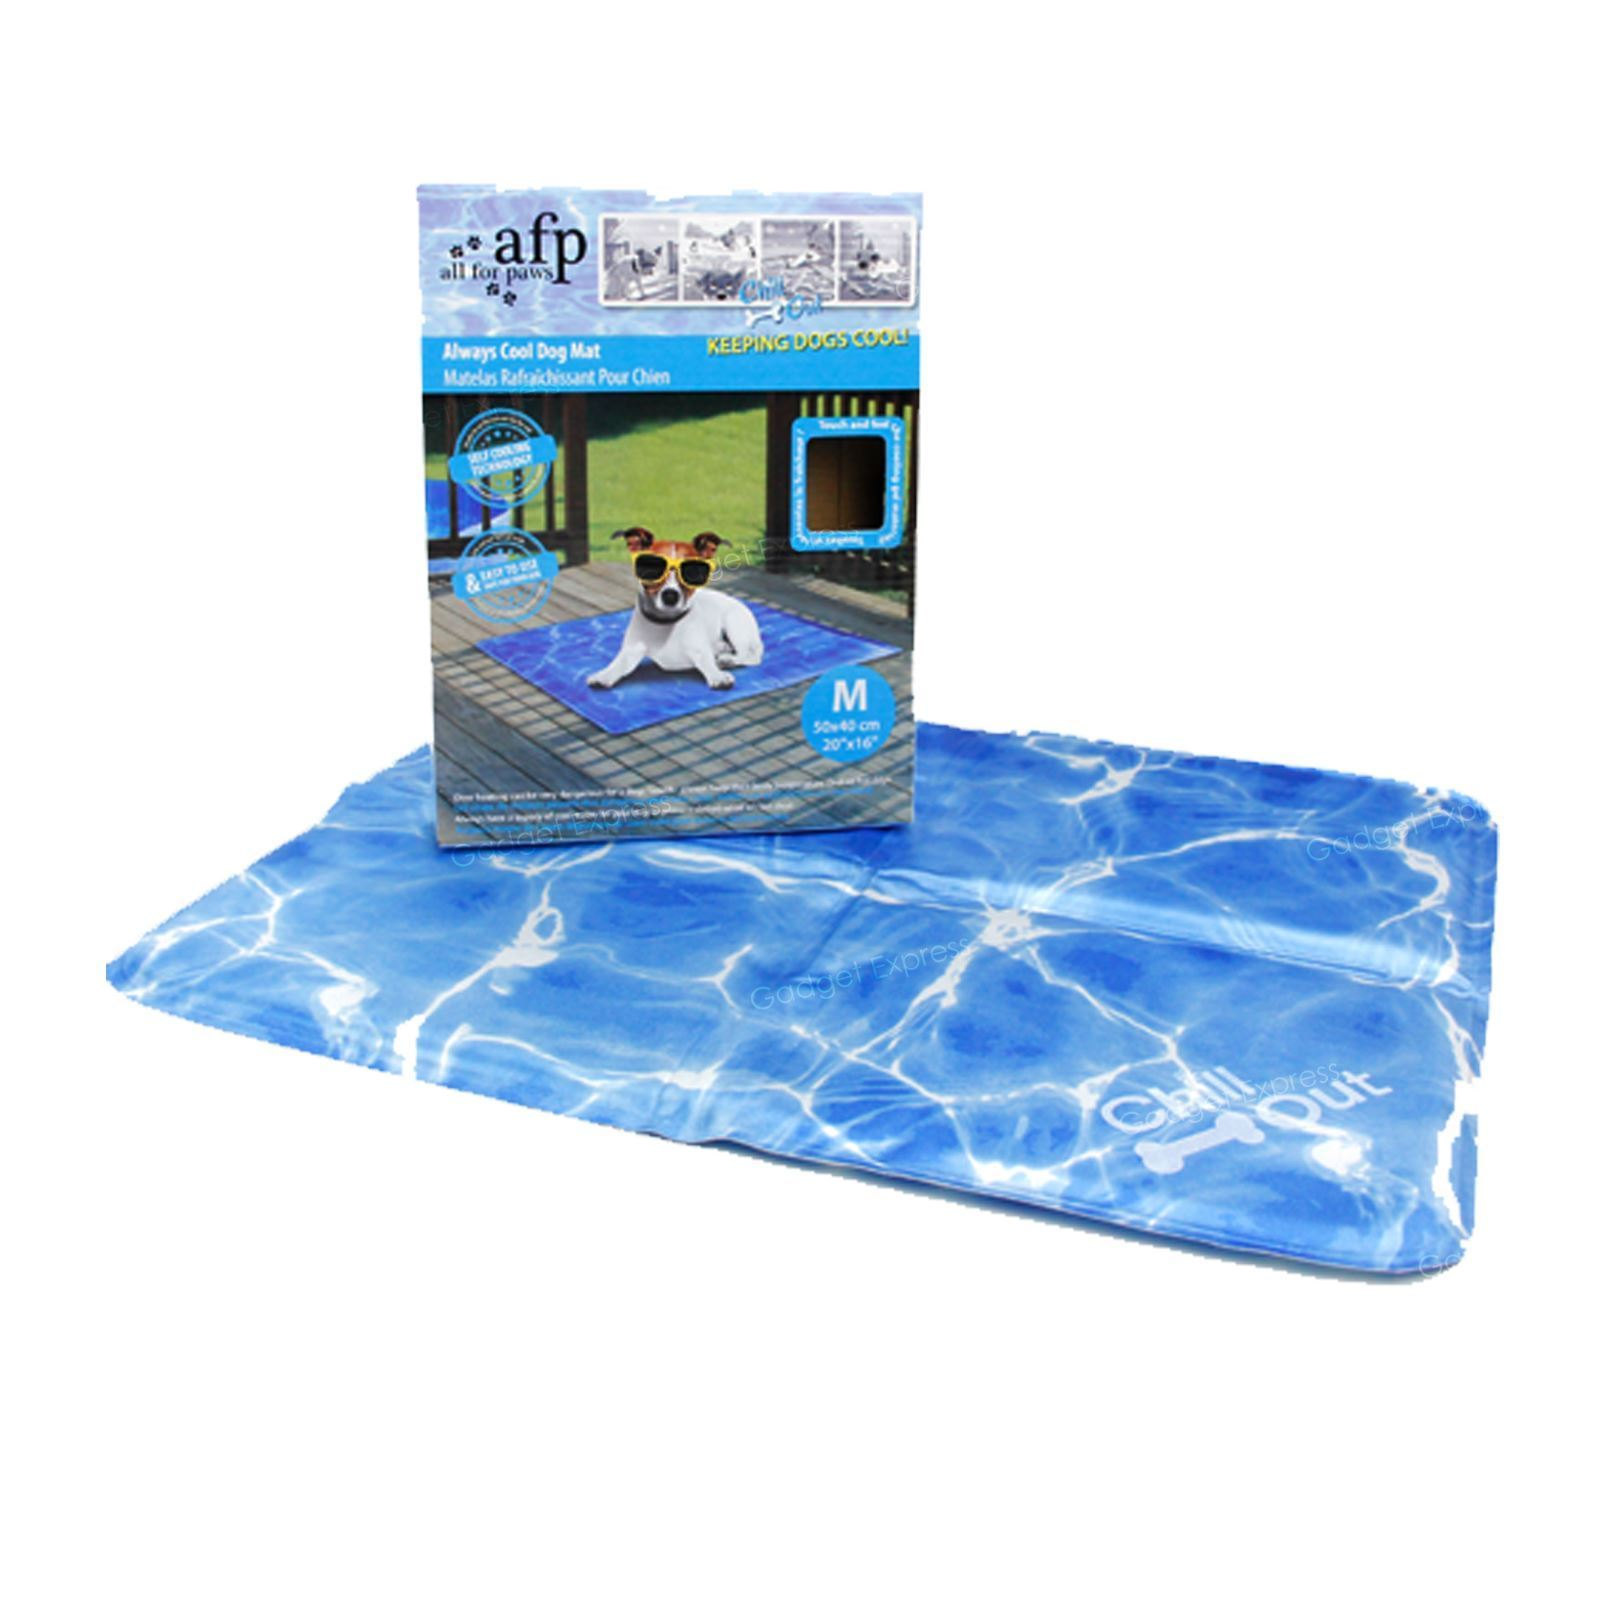 All For Paws Chill Out Always Cool Mat, Medium